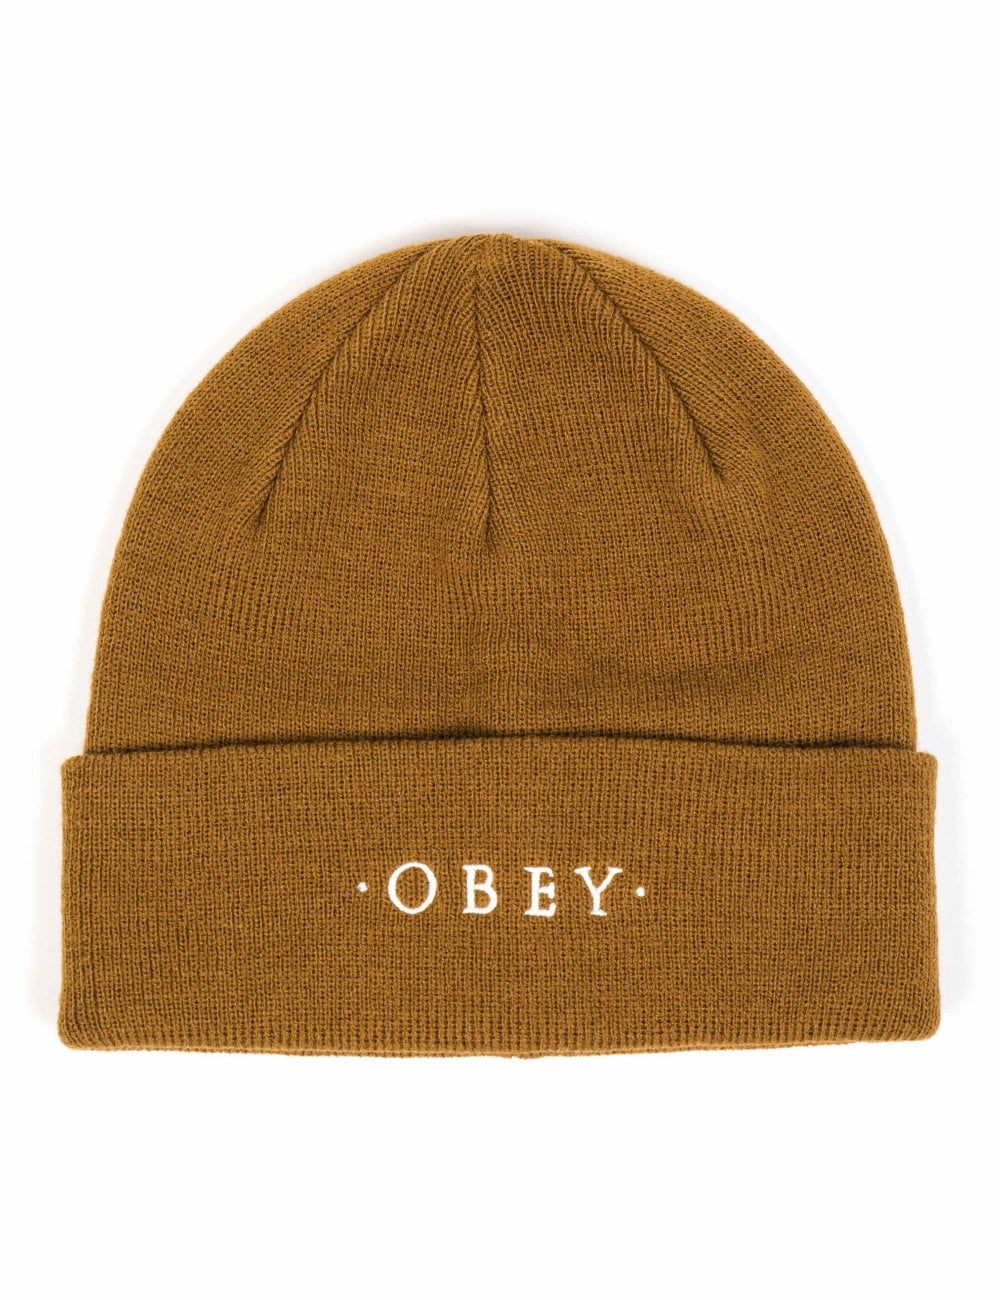 7006b92b4d6 Obey Clothing Union Beanie Hat - Tapenade - Accessories from Fat Buddha  Store UK